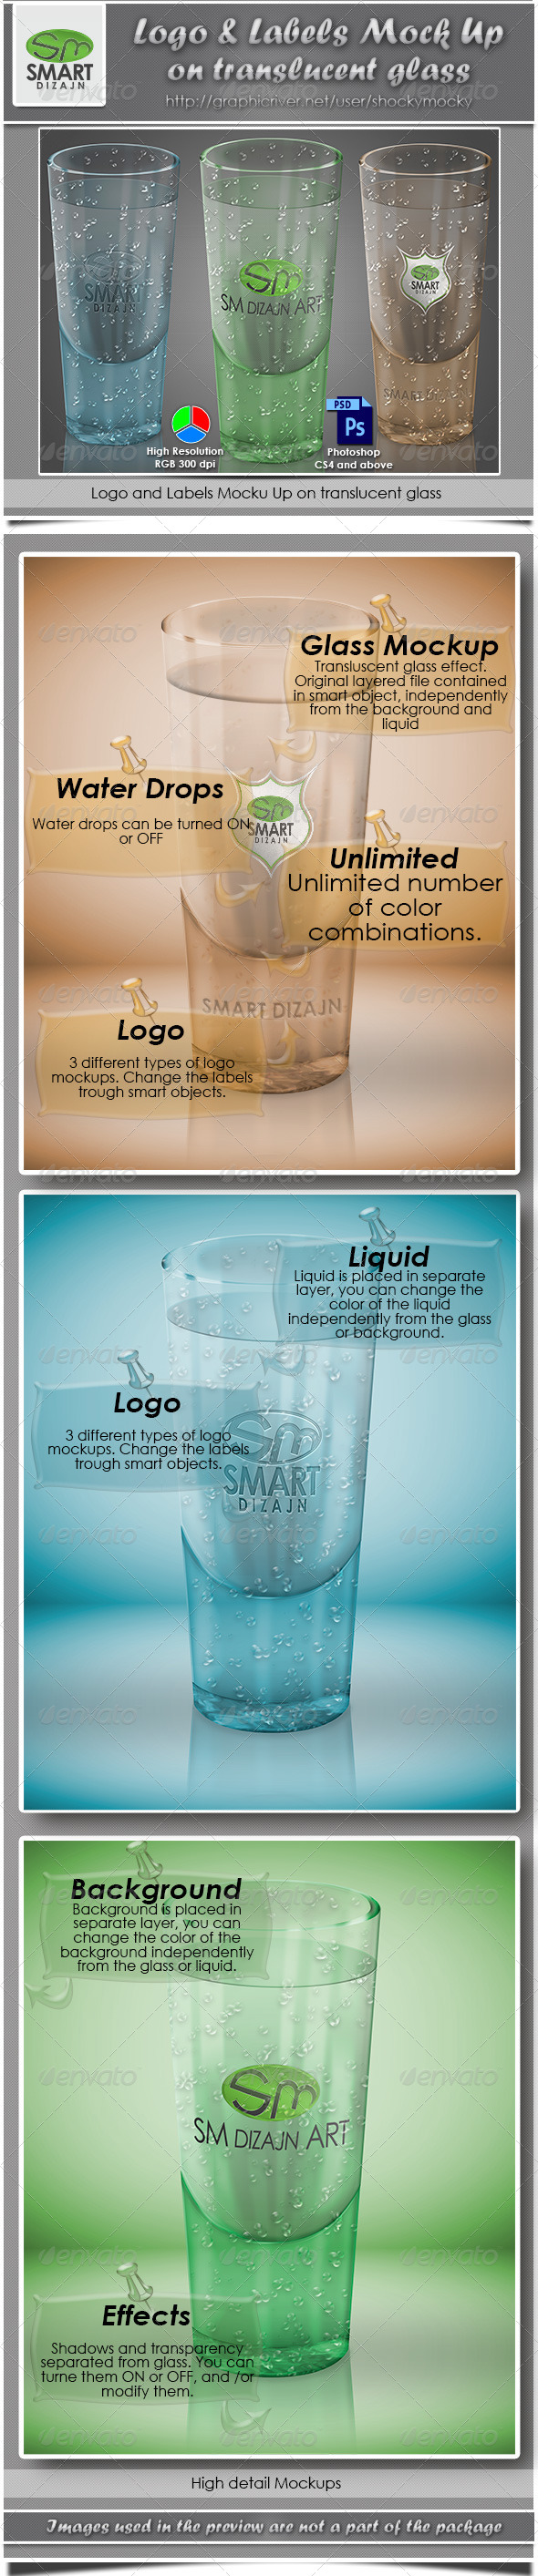 GraphicRiver Logo Mockup on Translucent Glass Object 4303178